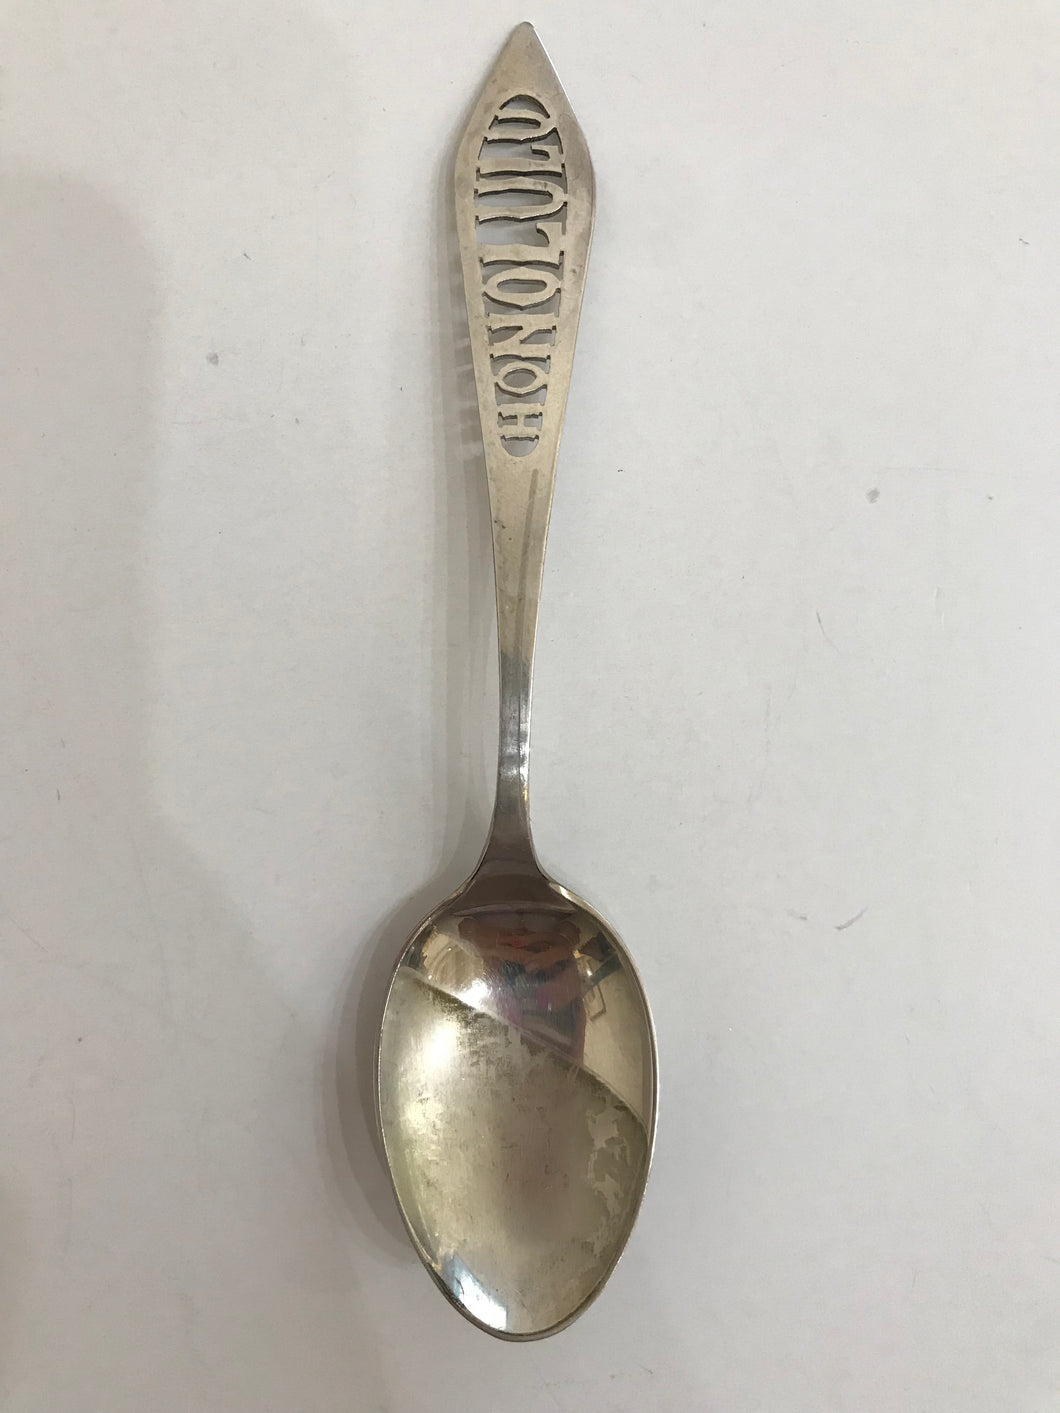 Collectible Vintage Honolulu Hawaii Sterling Silver Spoon